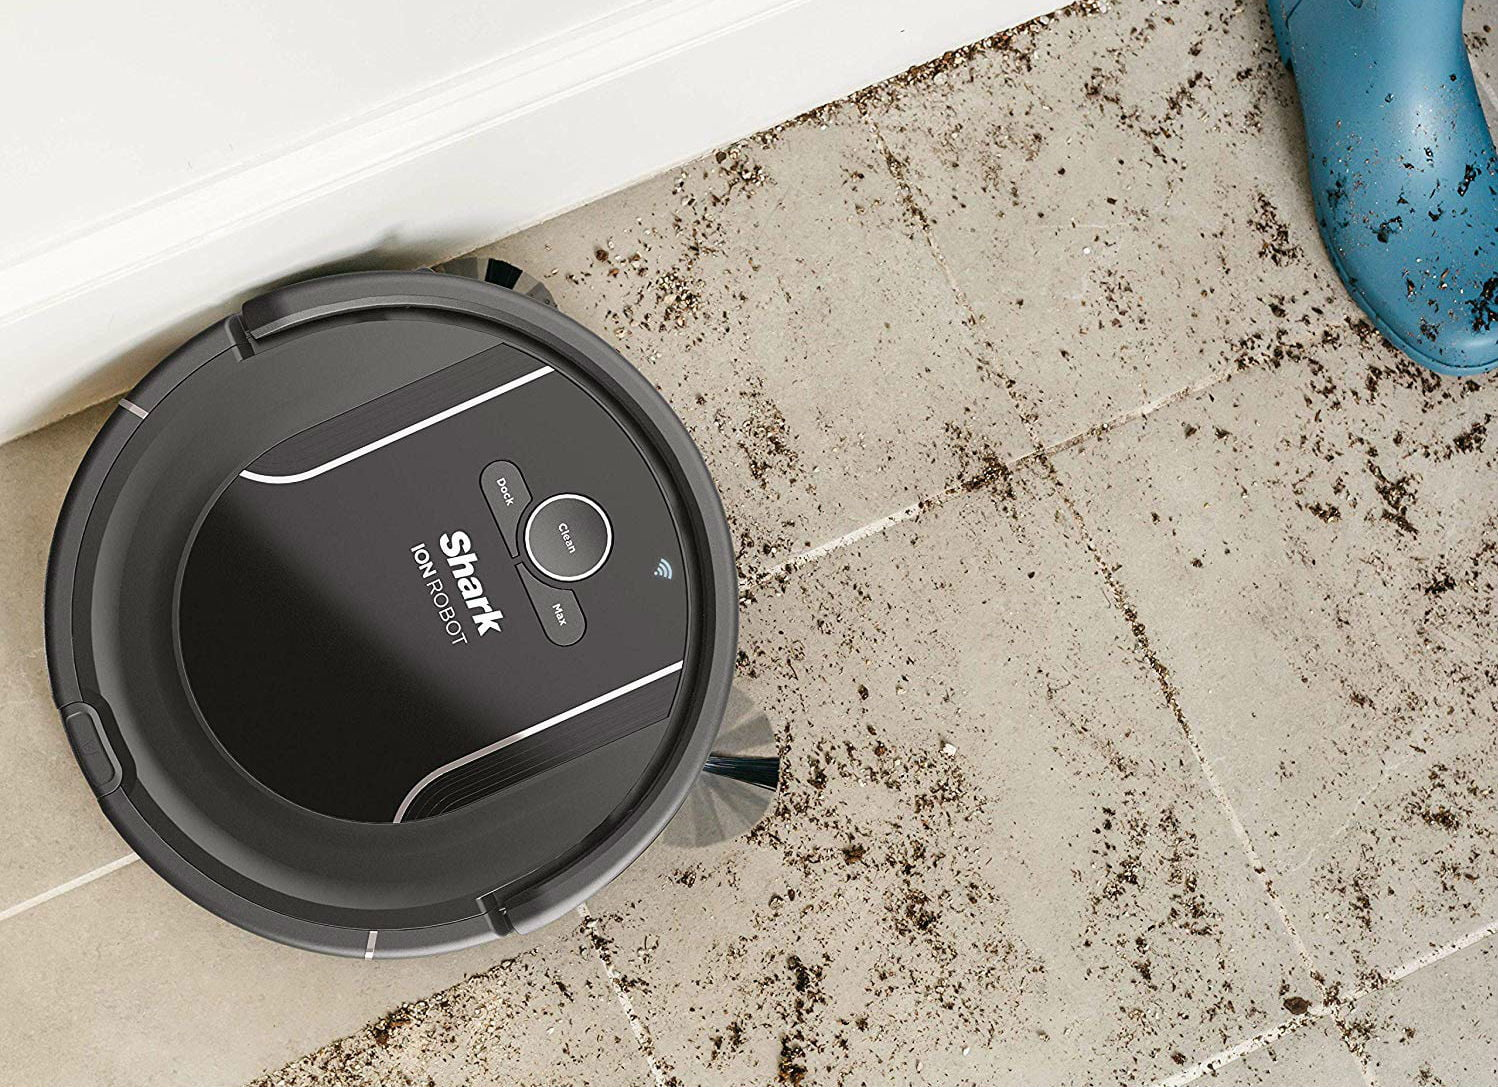 Amazon Black Friday deal: Save 50 percent on the Shark ION robot vacuum